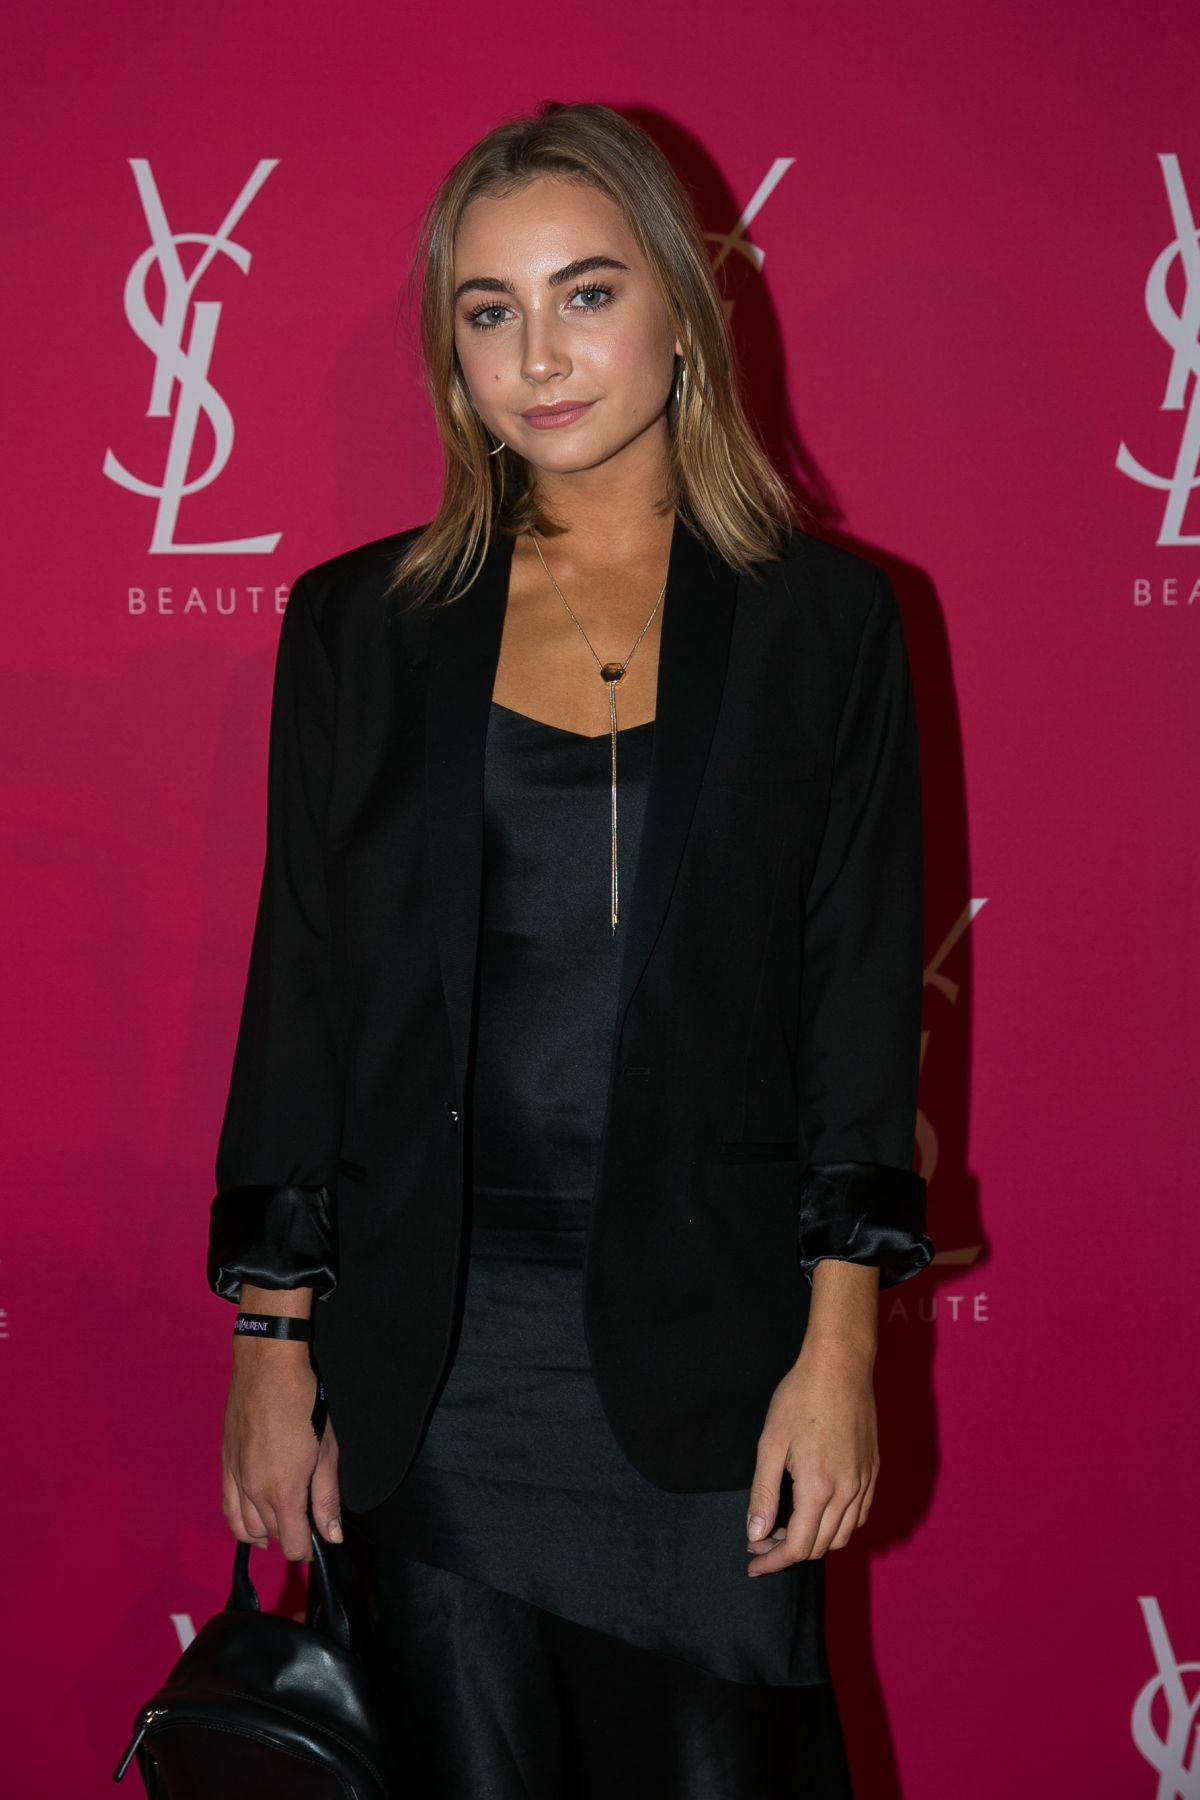 MAVOURNEE HAZEL at YSL Beauty Club Party in Melbourne 04/27/2017